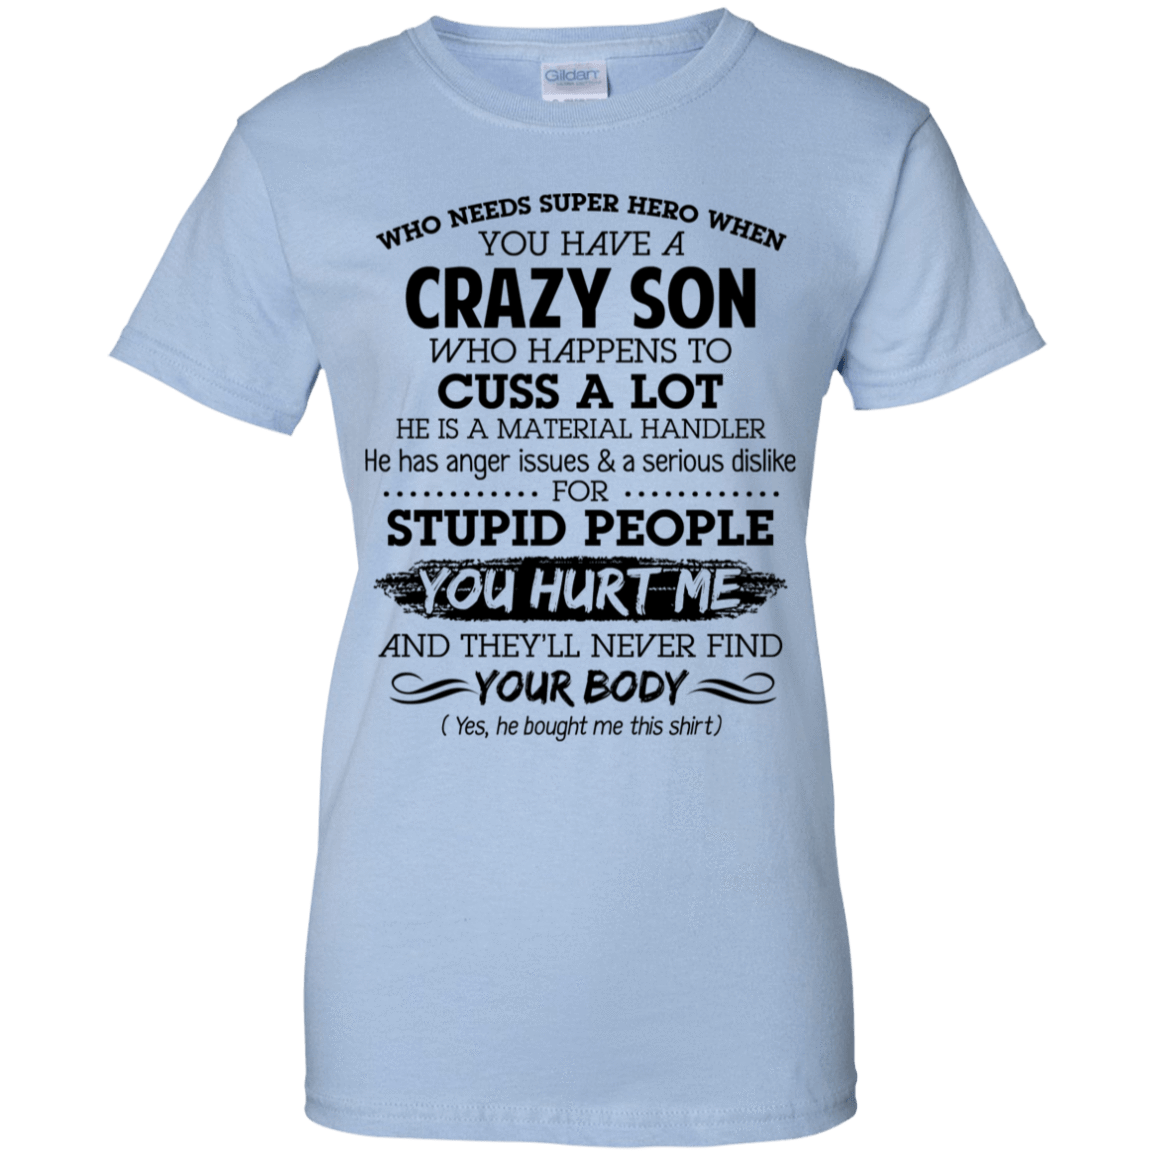 Have Crazy Son He Is A Material Handler Mother's Day Gift 939-9257-73619435-44716 - Tee Ript